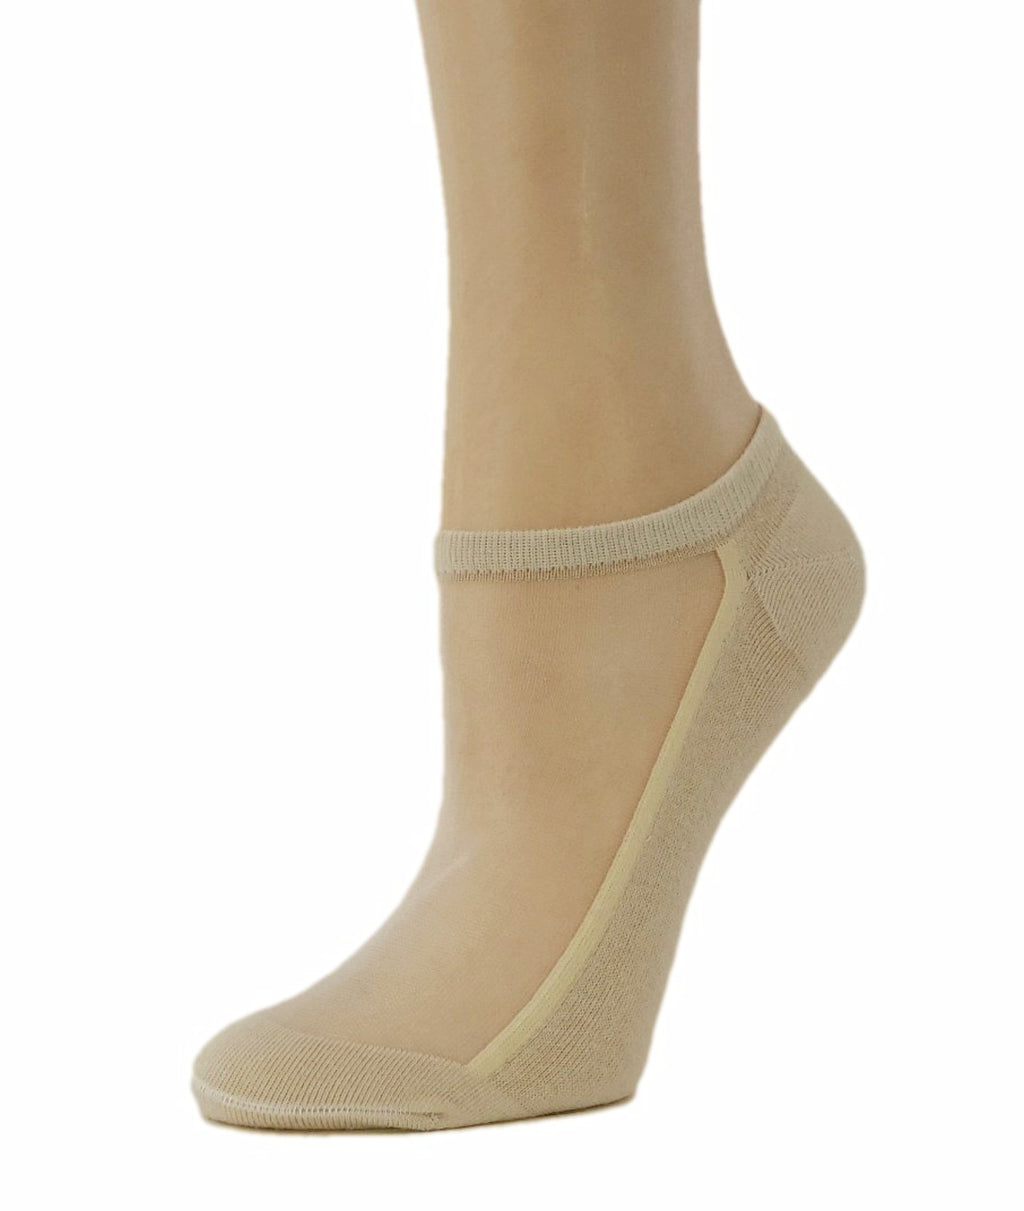 Sleek Beige Ankle Sheer Socks - Global Trendz Fashion®